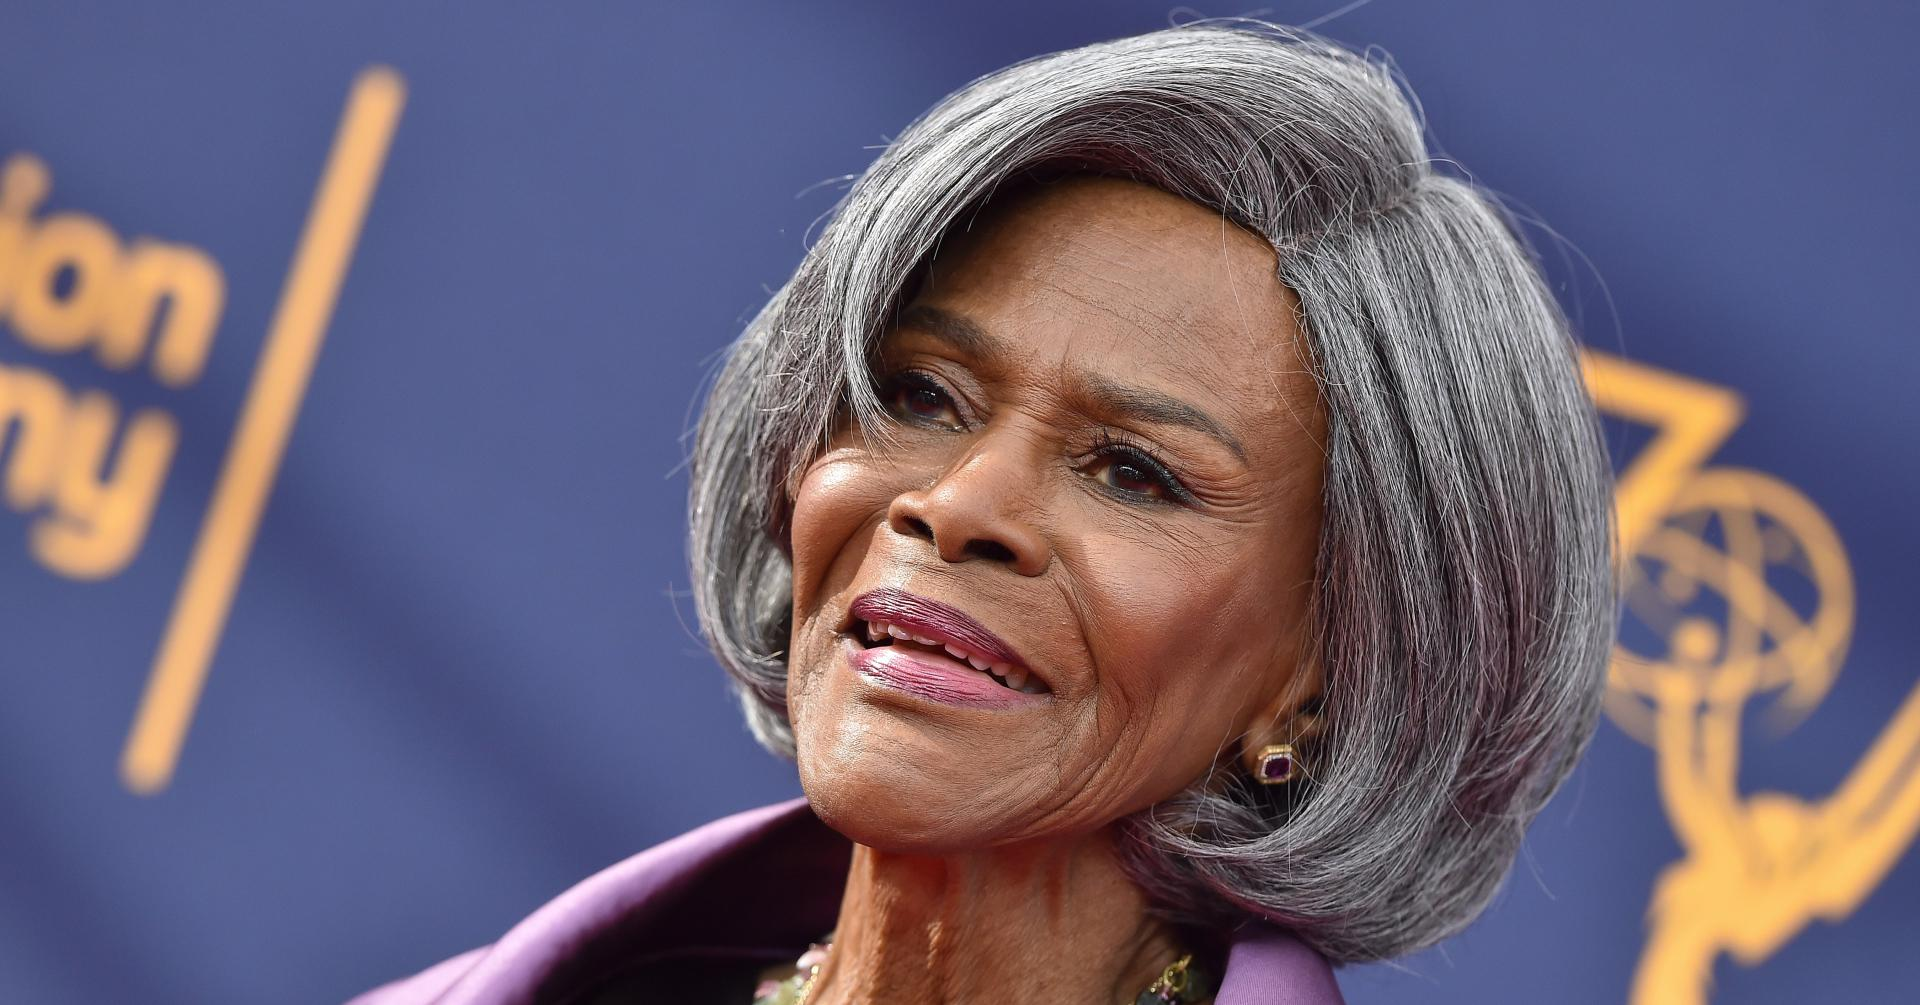 cicely tyson died aged  celeb reactions